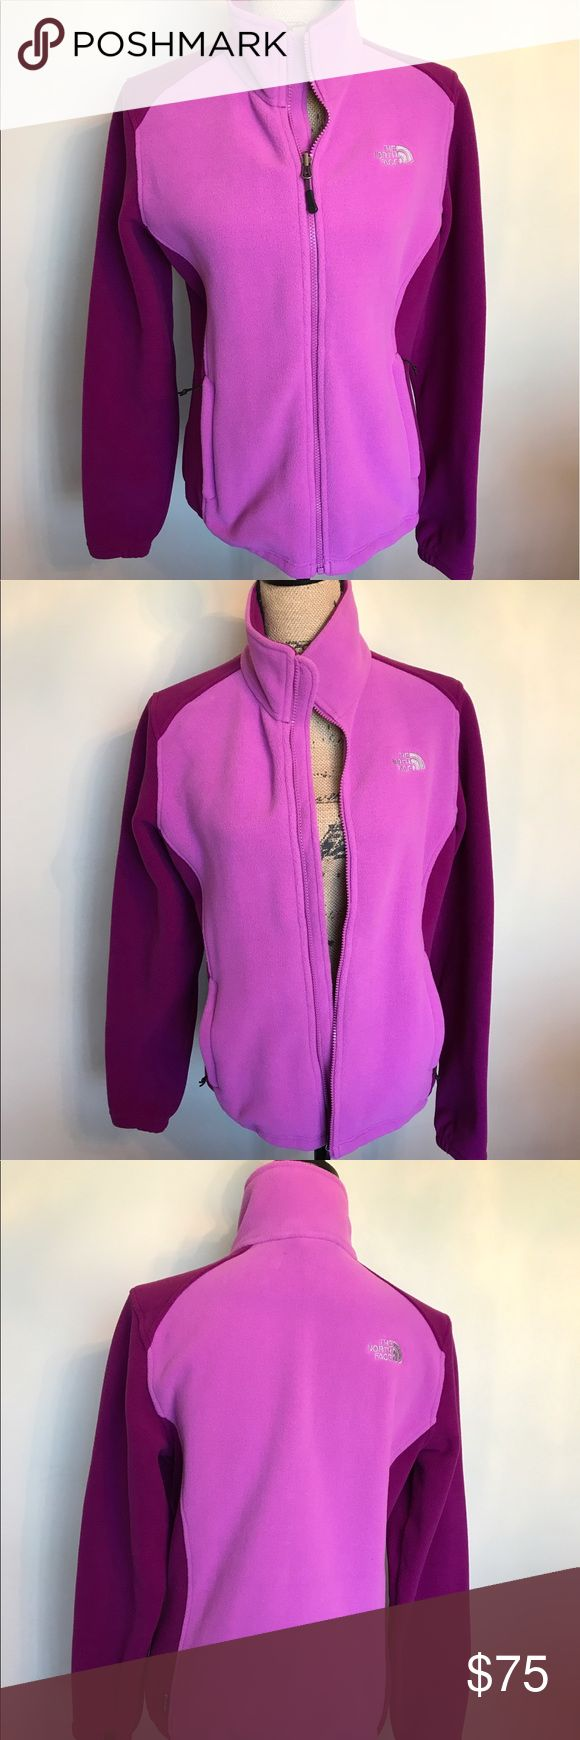 ❄️Warm & FuzzyNorth face ladies jacket like new Worn once🎉 Please ask for additional pictures, measurements, or ask questions before purchase. 🎉 No trades or other apps 🎉 Ships next business day, unless noted in my closet  🎉 Bundle for discount North Face Jackets & Coats